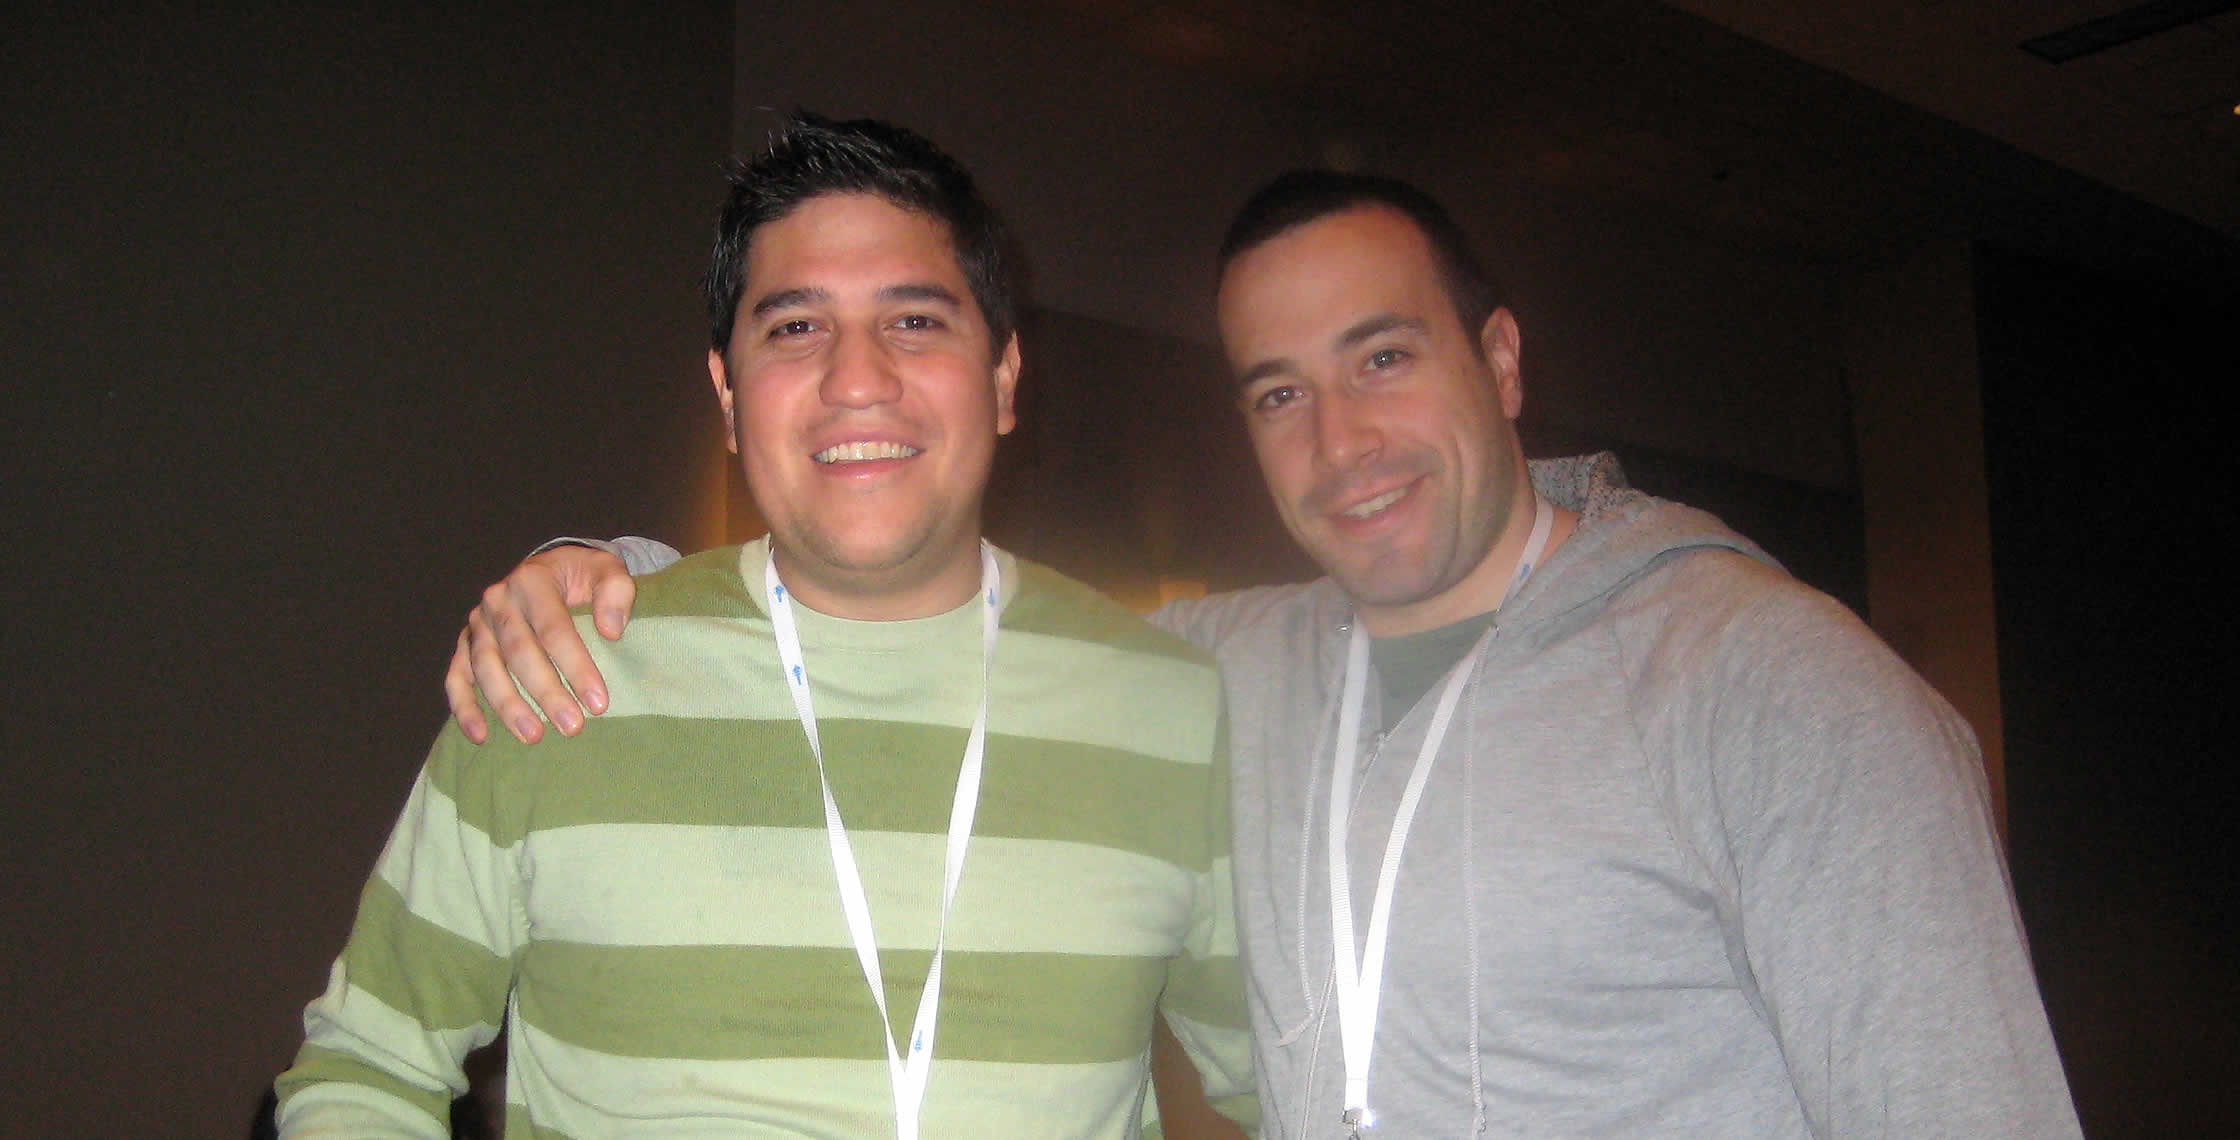 Ben Nadel at CFUNITED 2008 (Washington, D.C.) with: Luis Majano